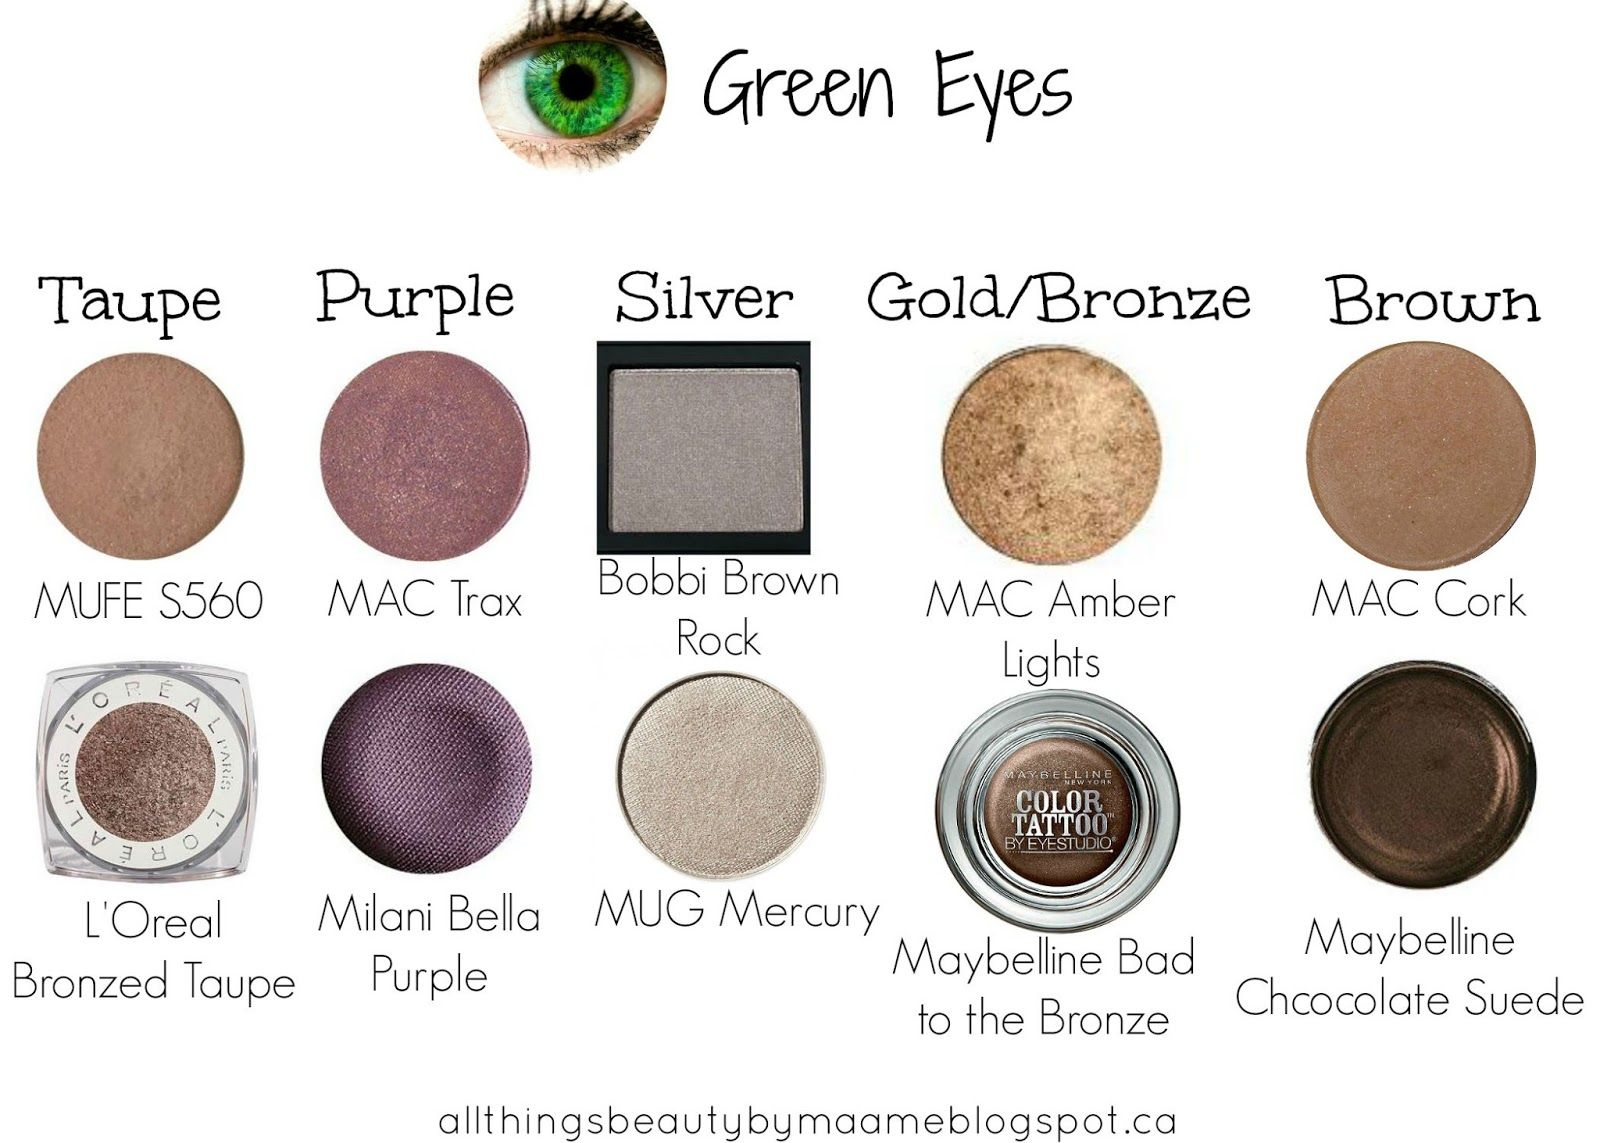 hello dolls and gents, what is your eye colour? do you have